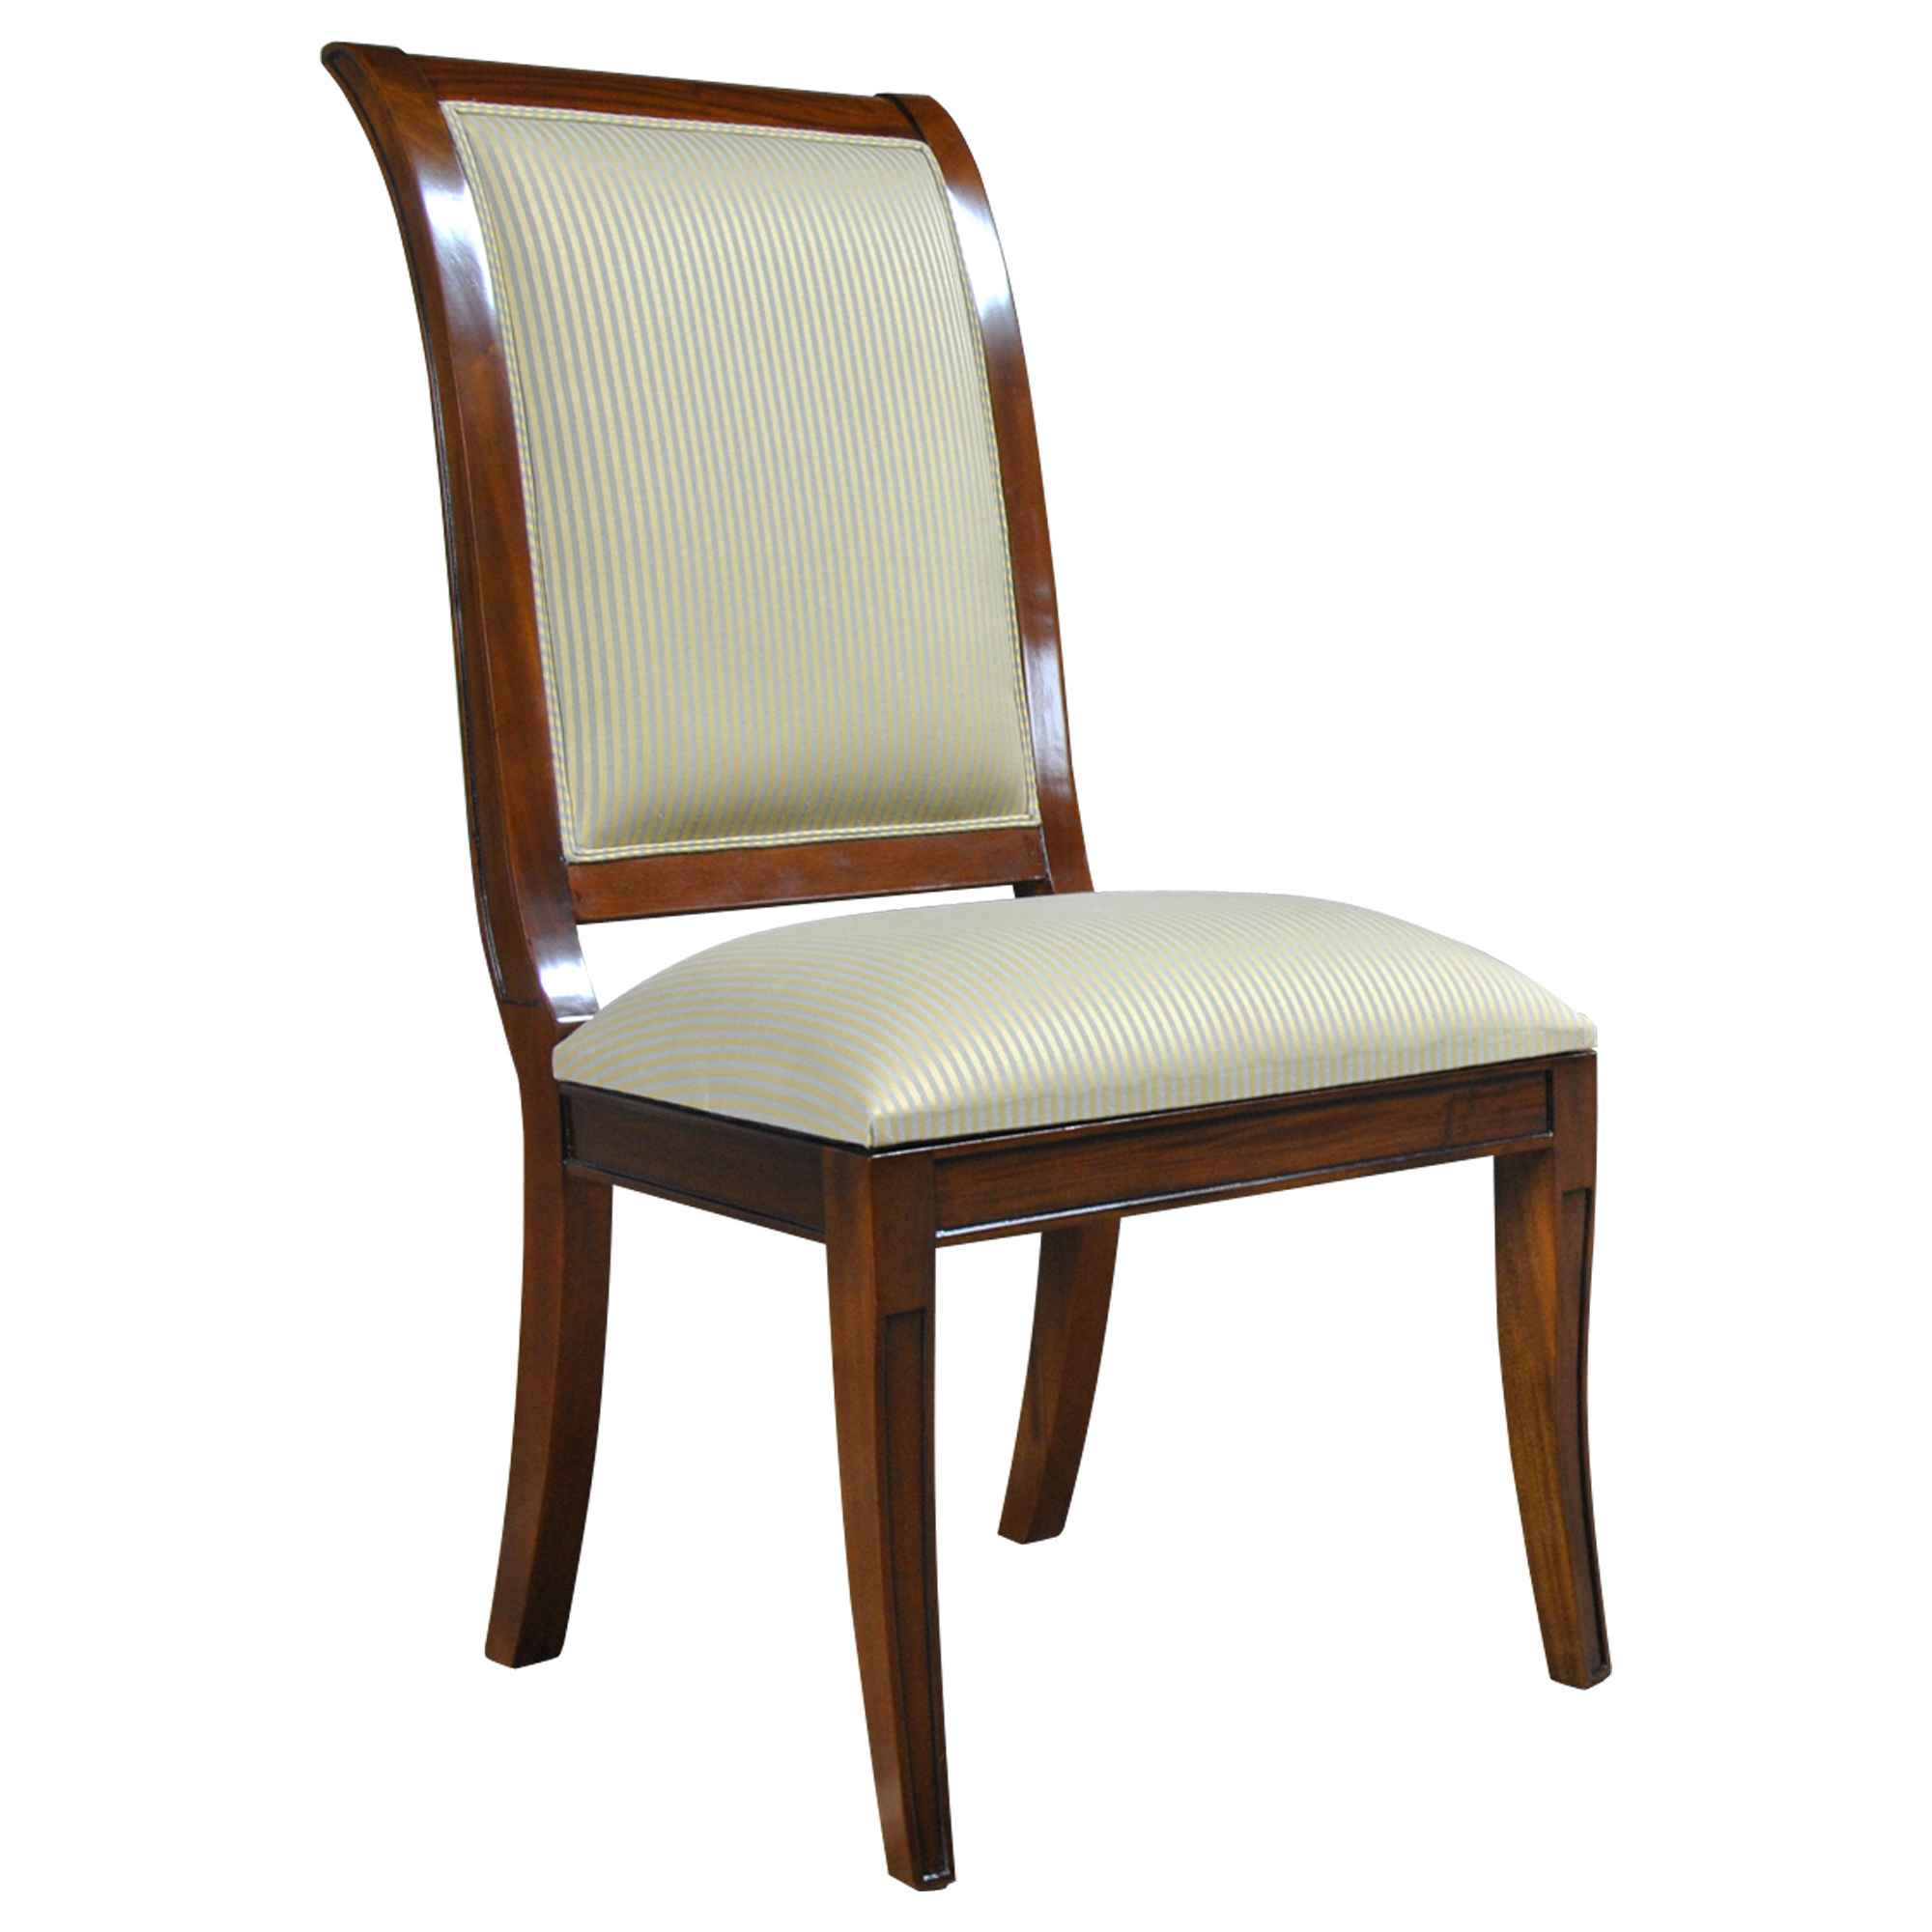 Home furniture dining room chairs regency upholstered dining chair ndrsc056 for Regency furniture living room sets